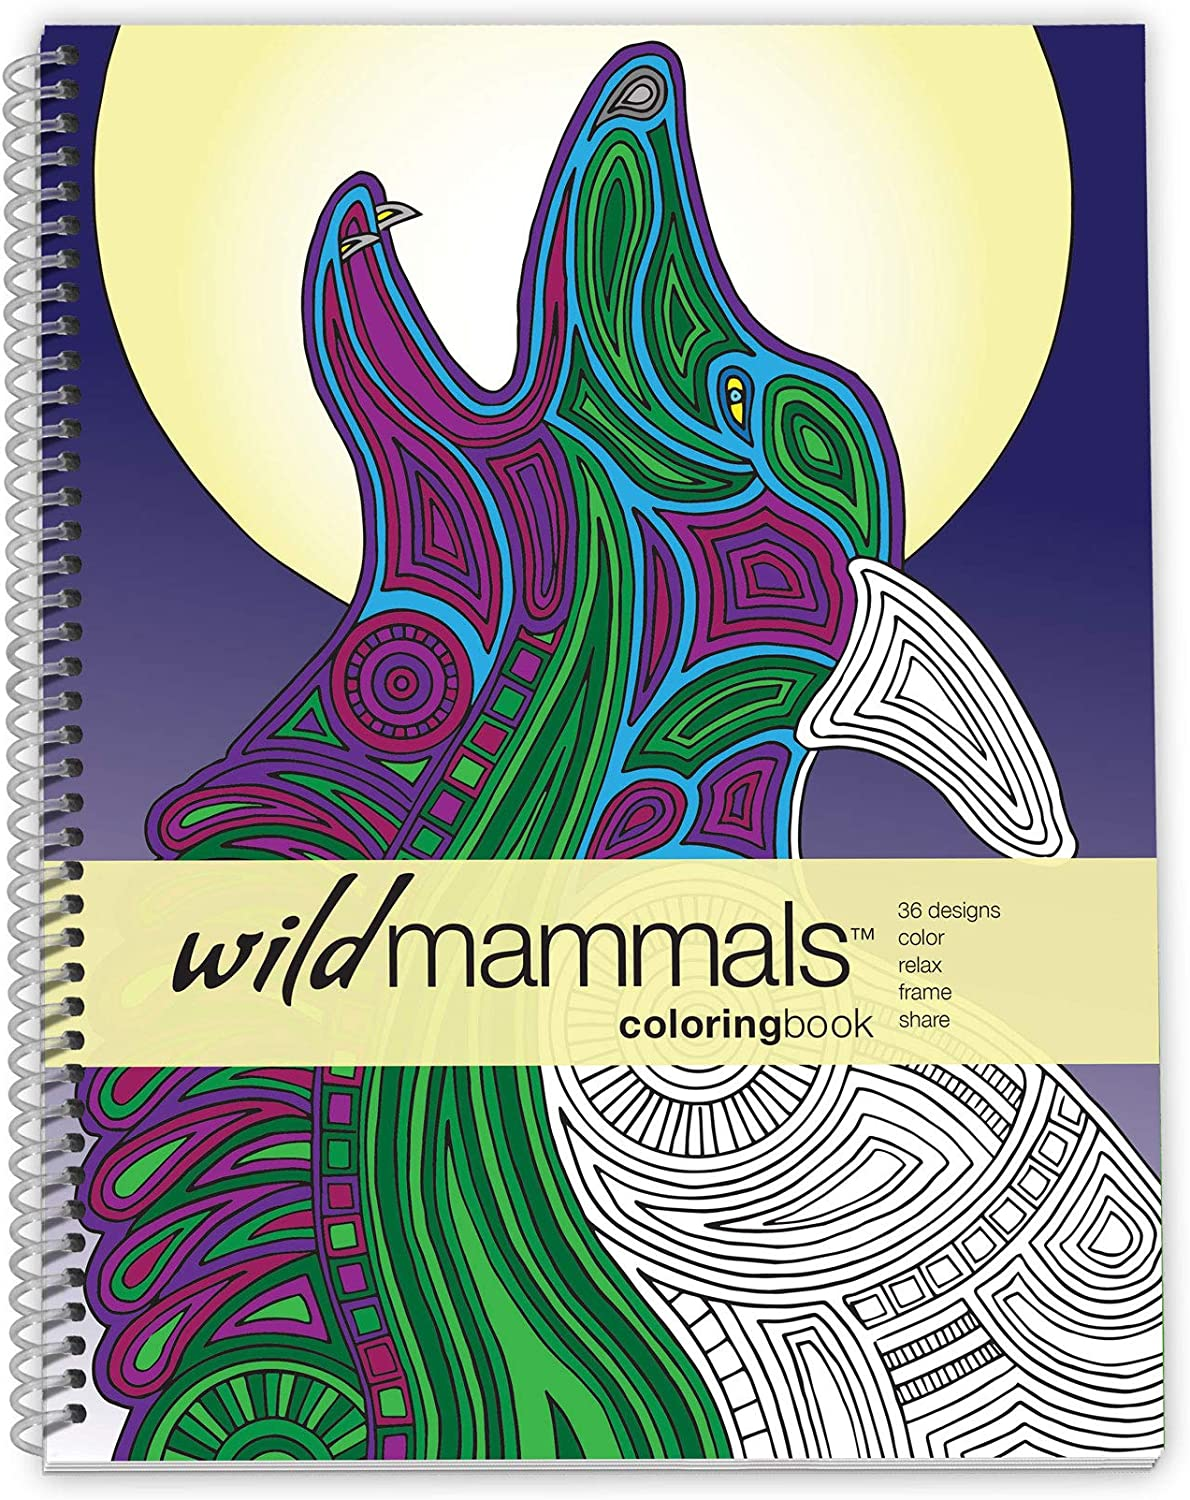 Action Publishing Coloring Book: Wild Mammals · Tribal Inspired Designs of Big Cats, Elephants, Primates and More for Stress Relief, Relaxation and Creativity · Large Sidebound (8.5 x 11 inches)